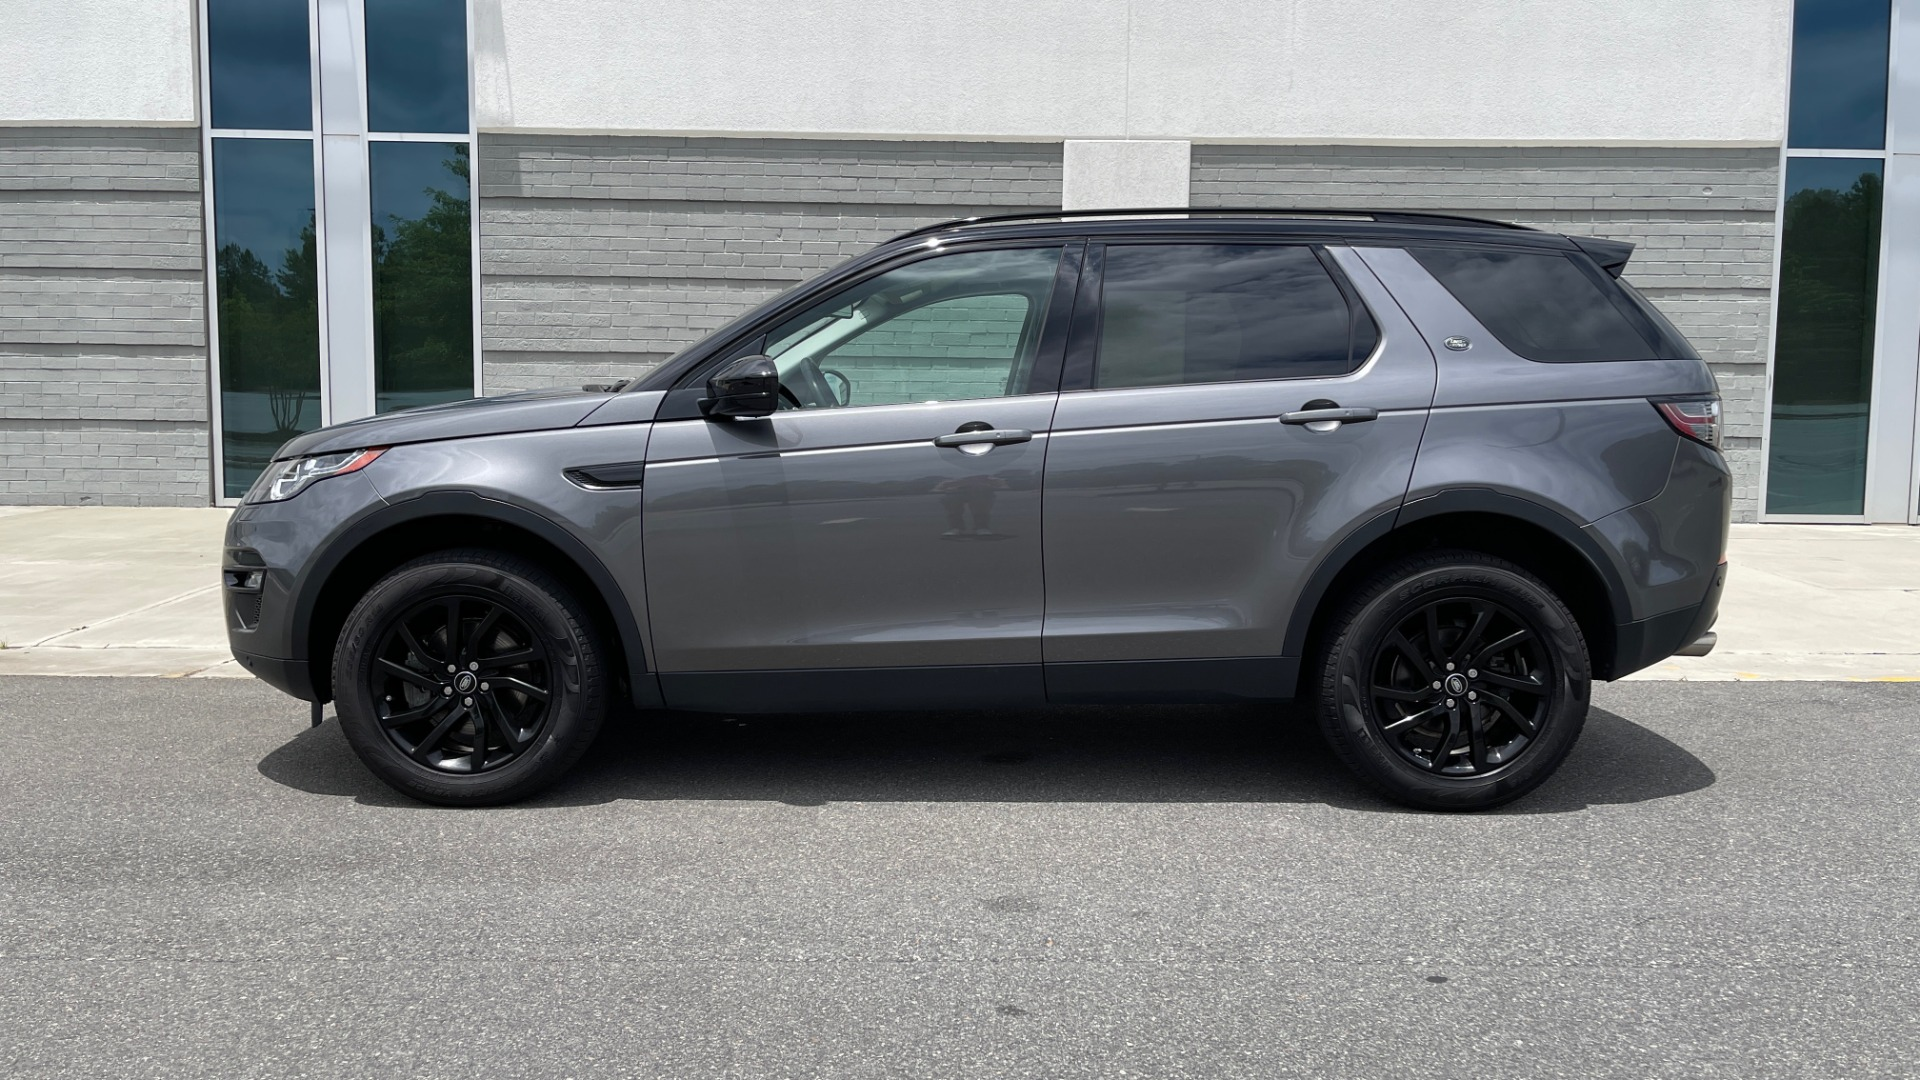 Used 2018 Land Rover DISCOVERY SPORT HSE 4WD / NAV / PANO-ROOF / MERIDIAN SND / HTD STS / LANE ASST / REARVIEW for sale $34,995 at Formula Imports in Charlotte NC 28227 4